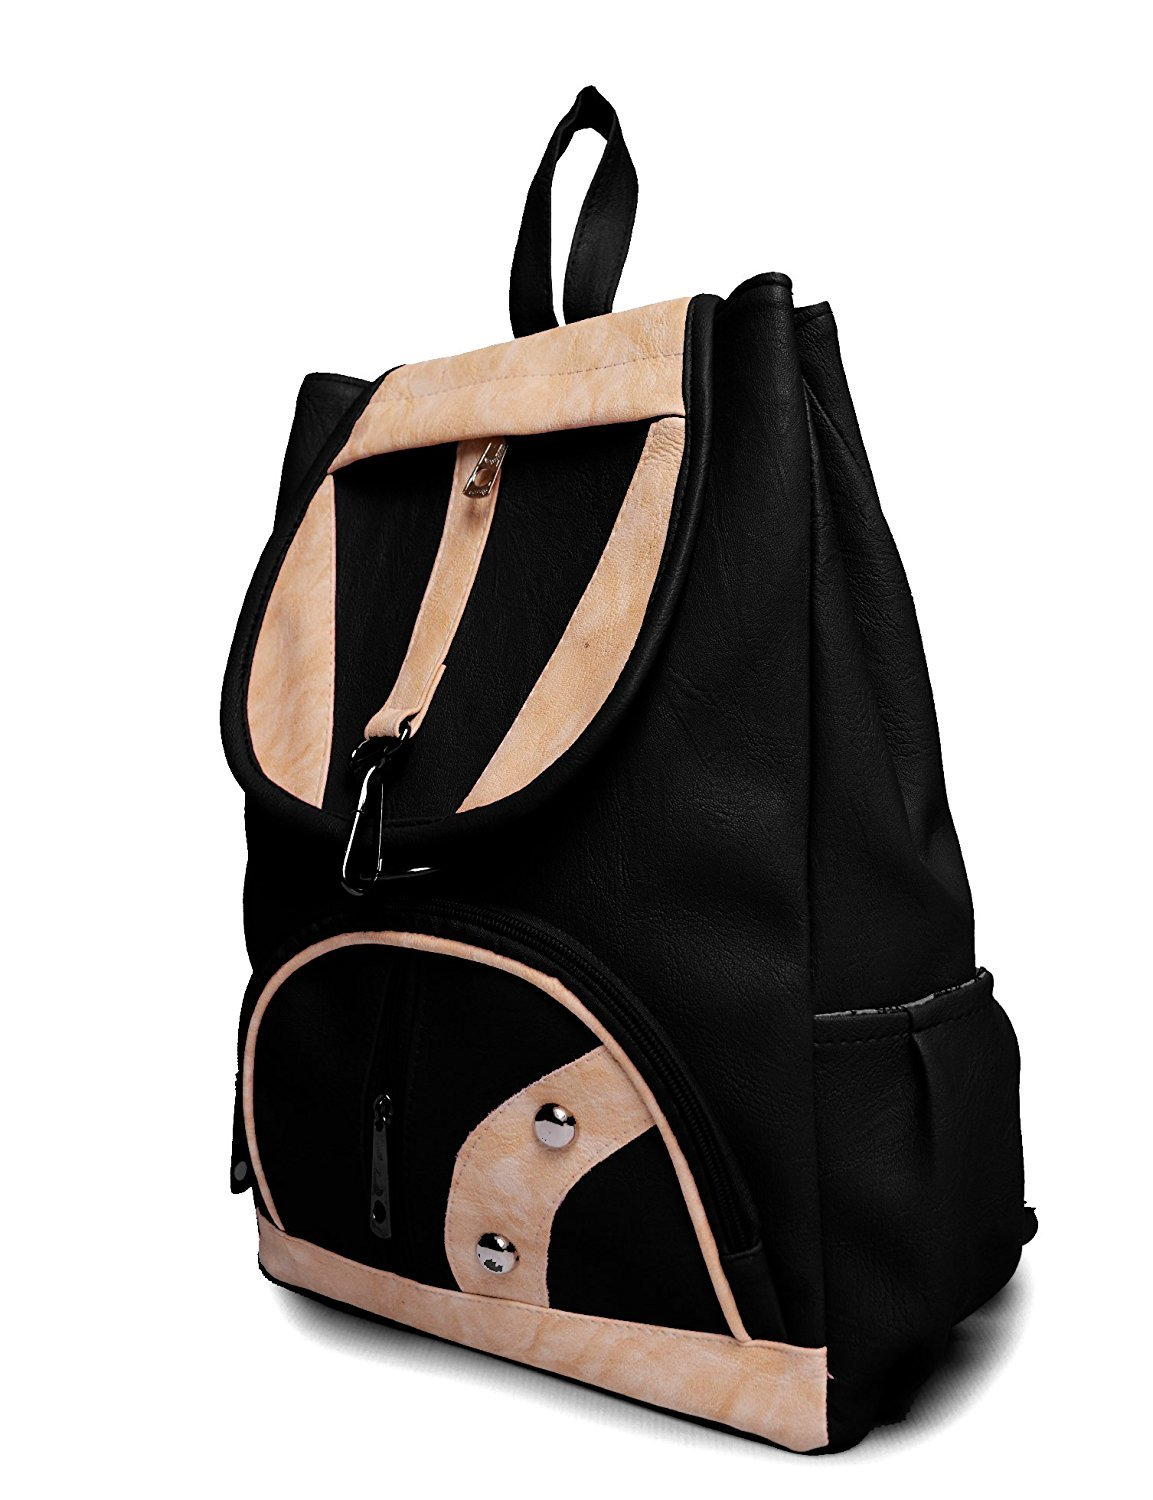 884aafbed Bizarre Vogue Stylish College Bags Backpacks For Women   Girls ...